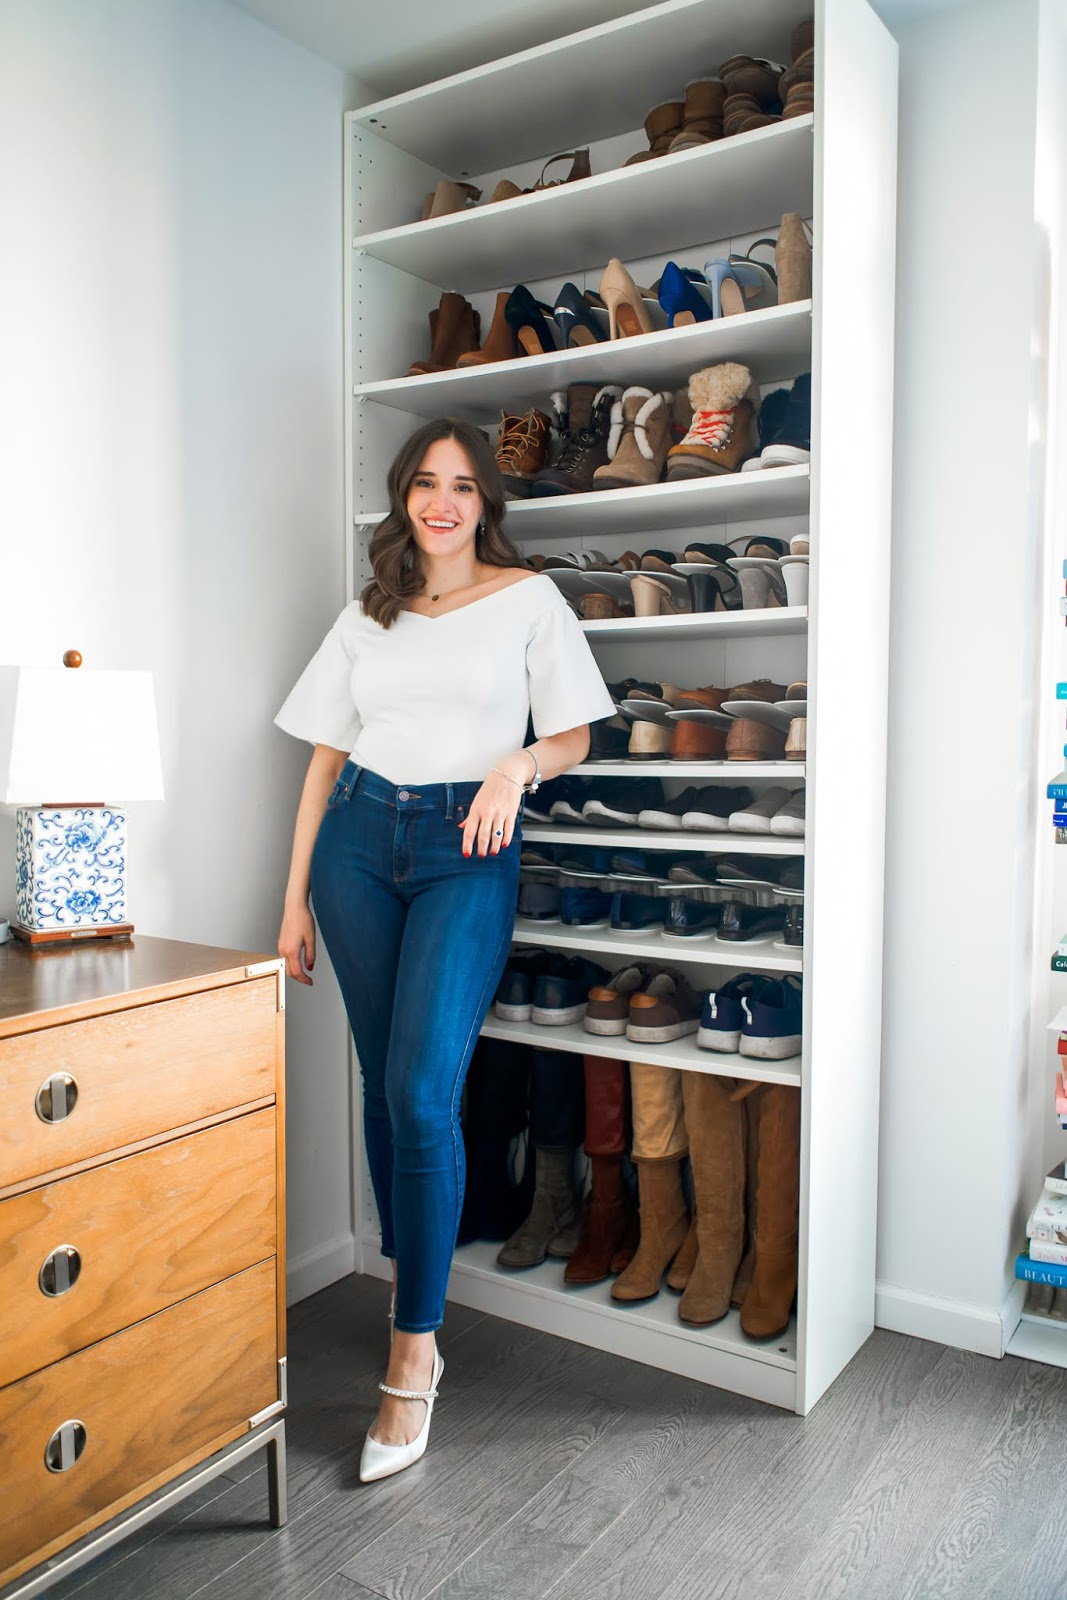 d50fdbb18a How I Store and Organize My Shoes | Covering the Bases | Bloglovin'